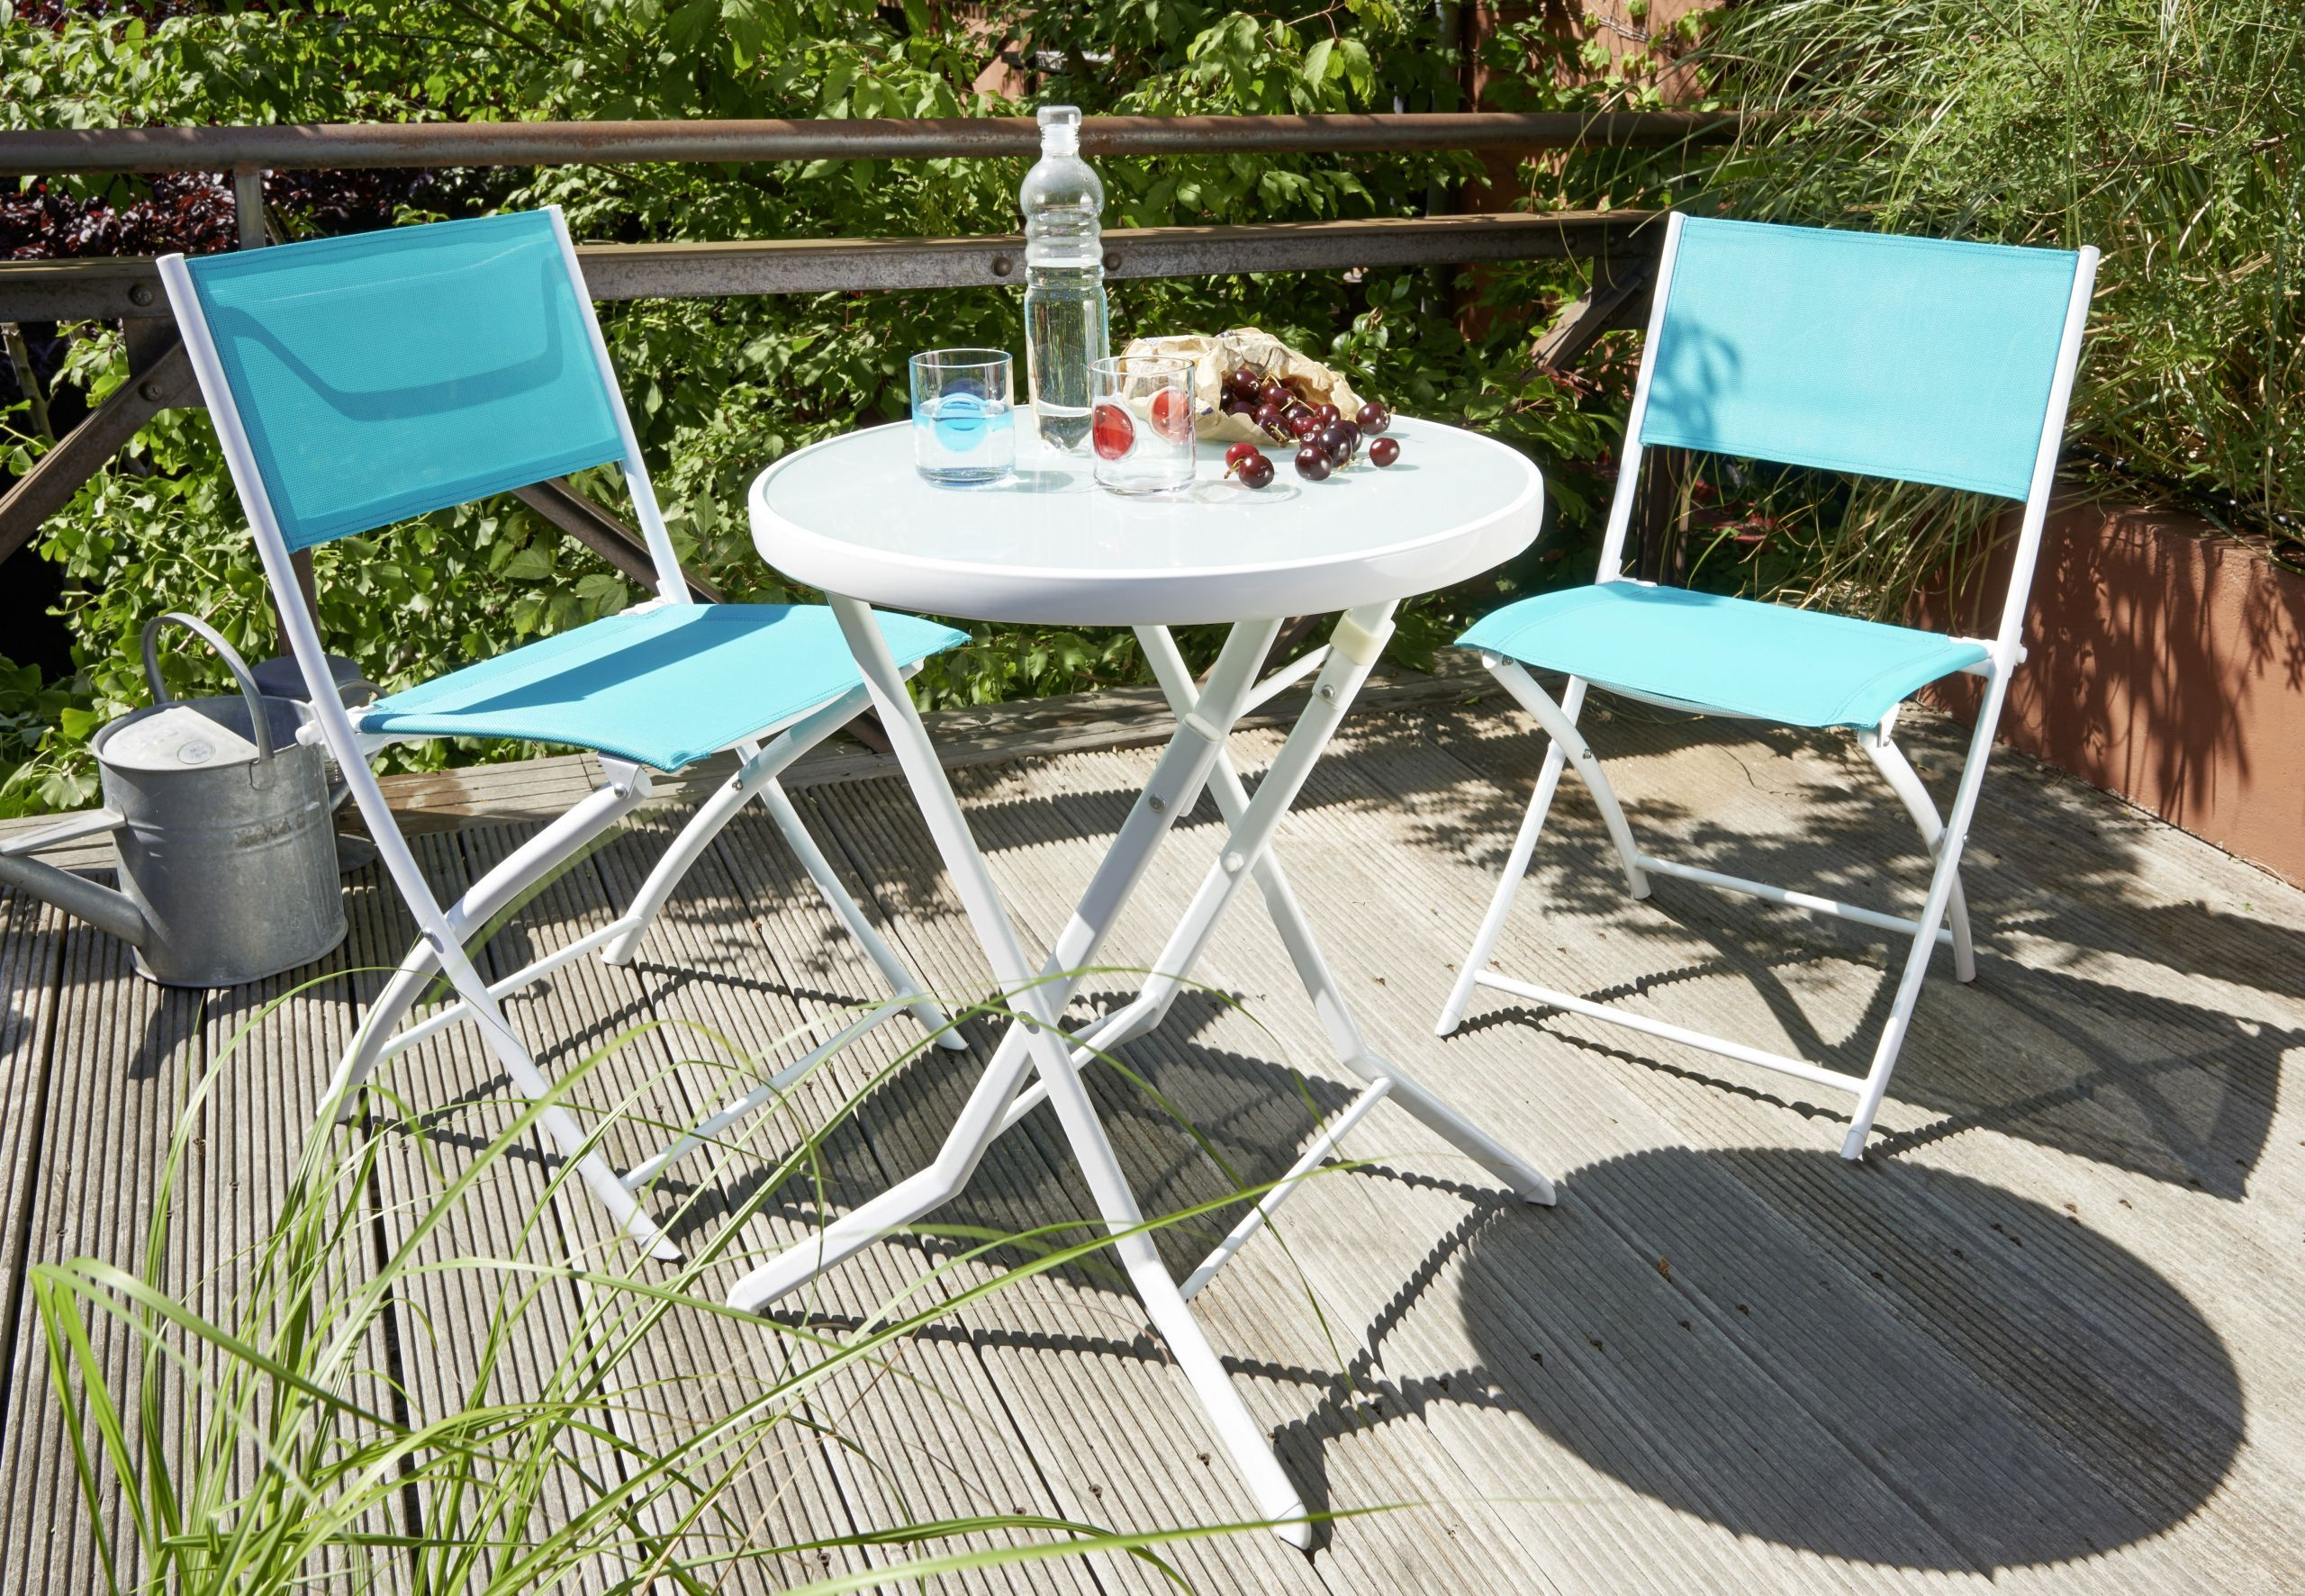 34 Beau Table Et Chaise Bistrot En 2020 Table Salon De Jardin Salon De Jardin Castorama Table De Jardin Pliante